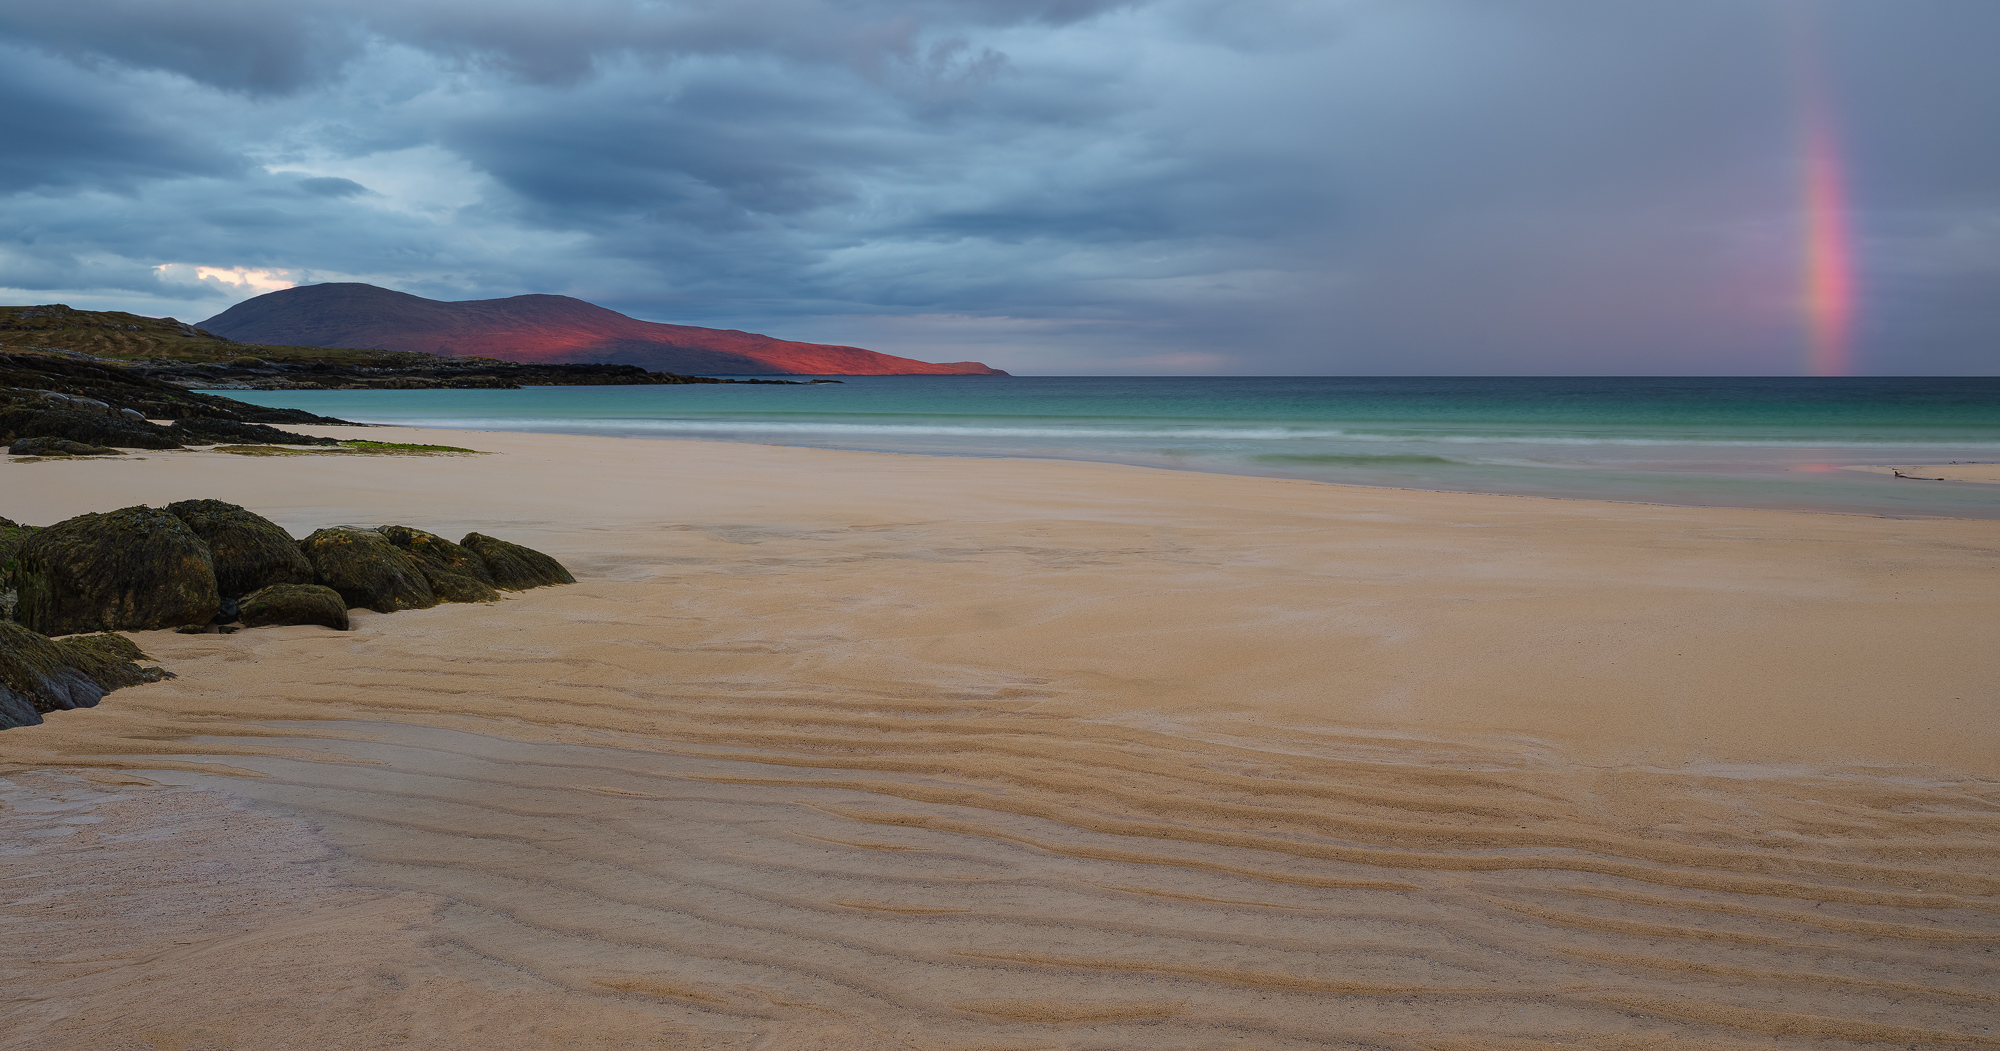 A sunrise rainbow forms over the blood lit Ceapabhal hill and the turquoise sea and the deeply furrowed sandy beach at Traigh Lar on Harris.